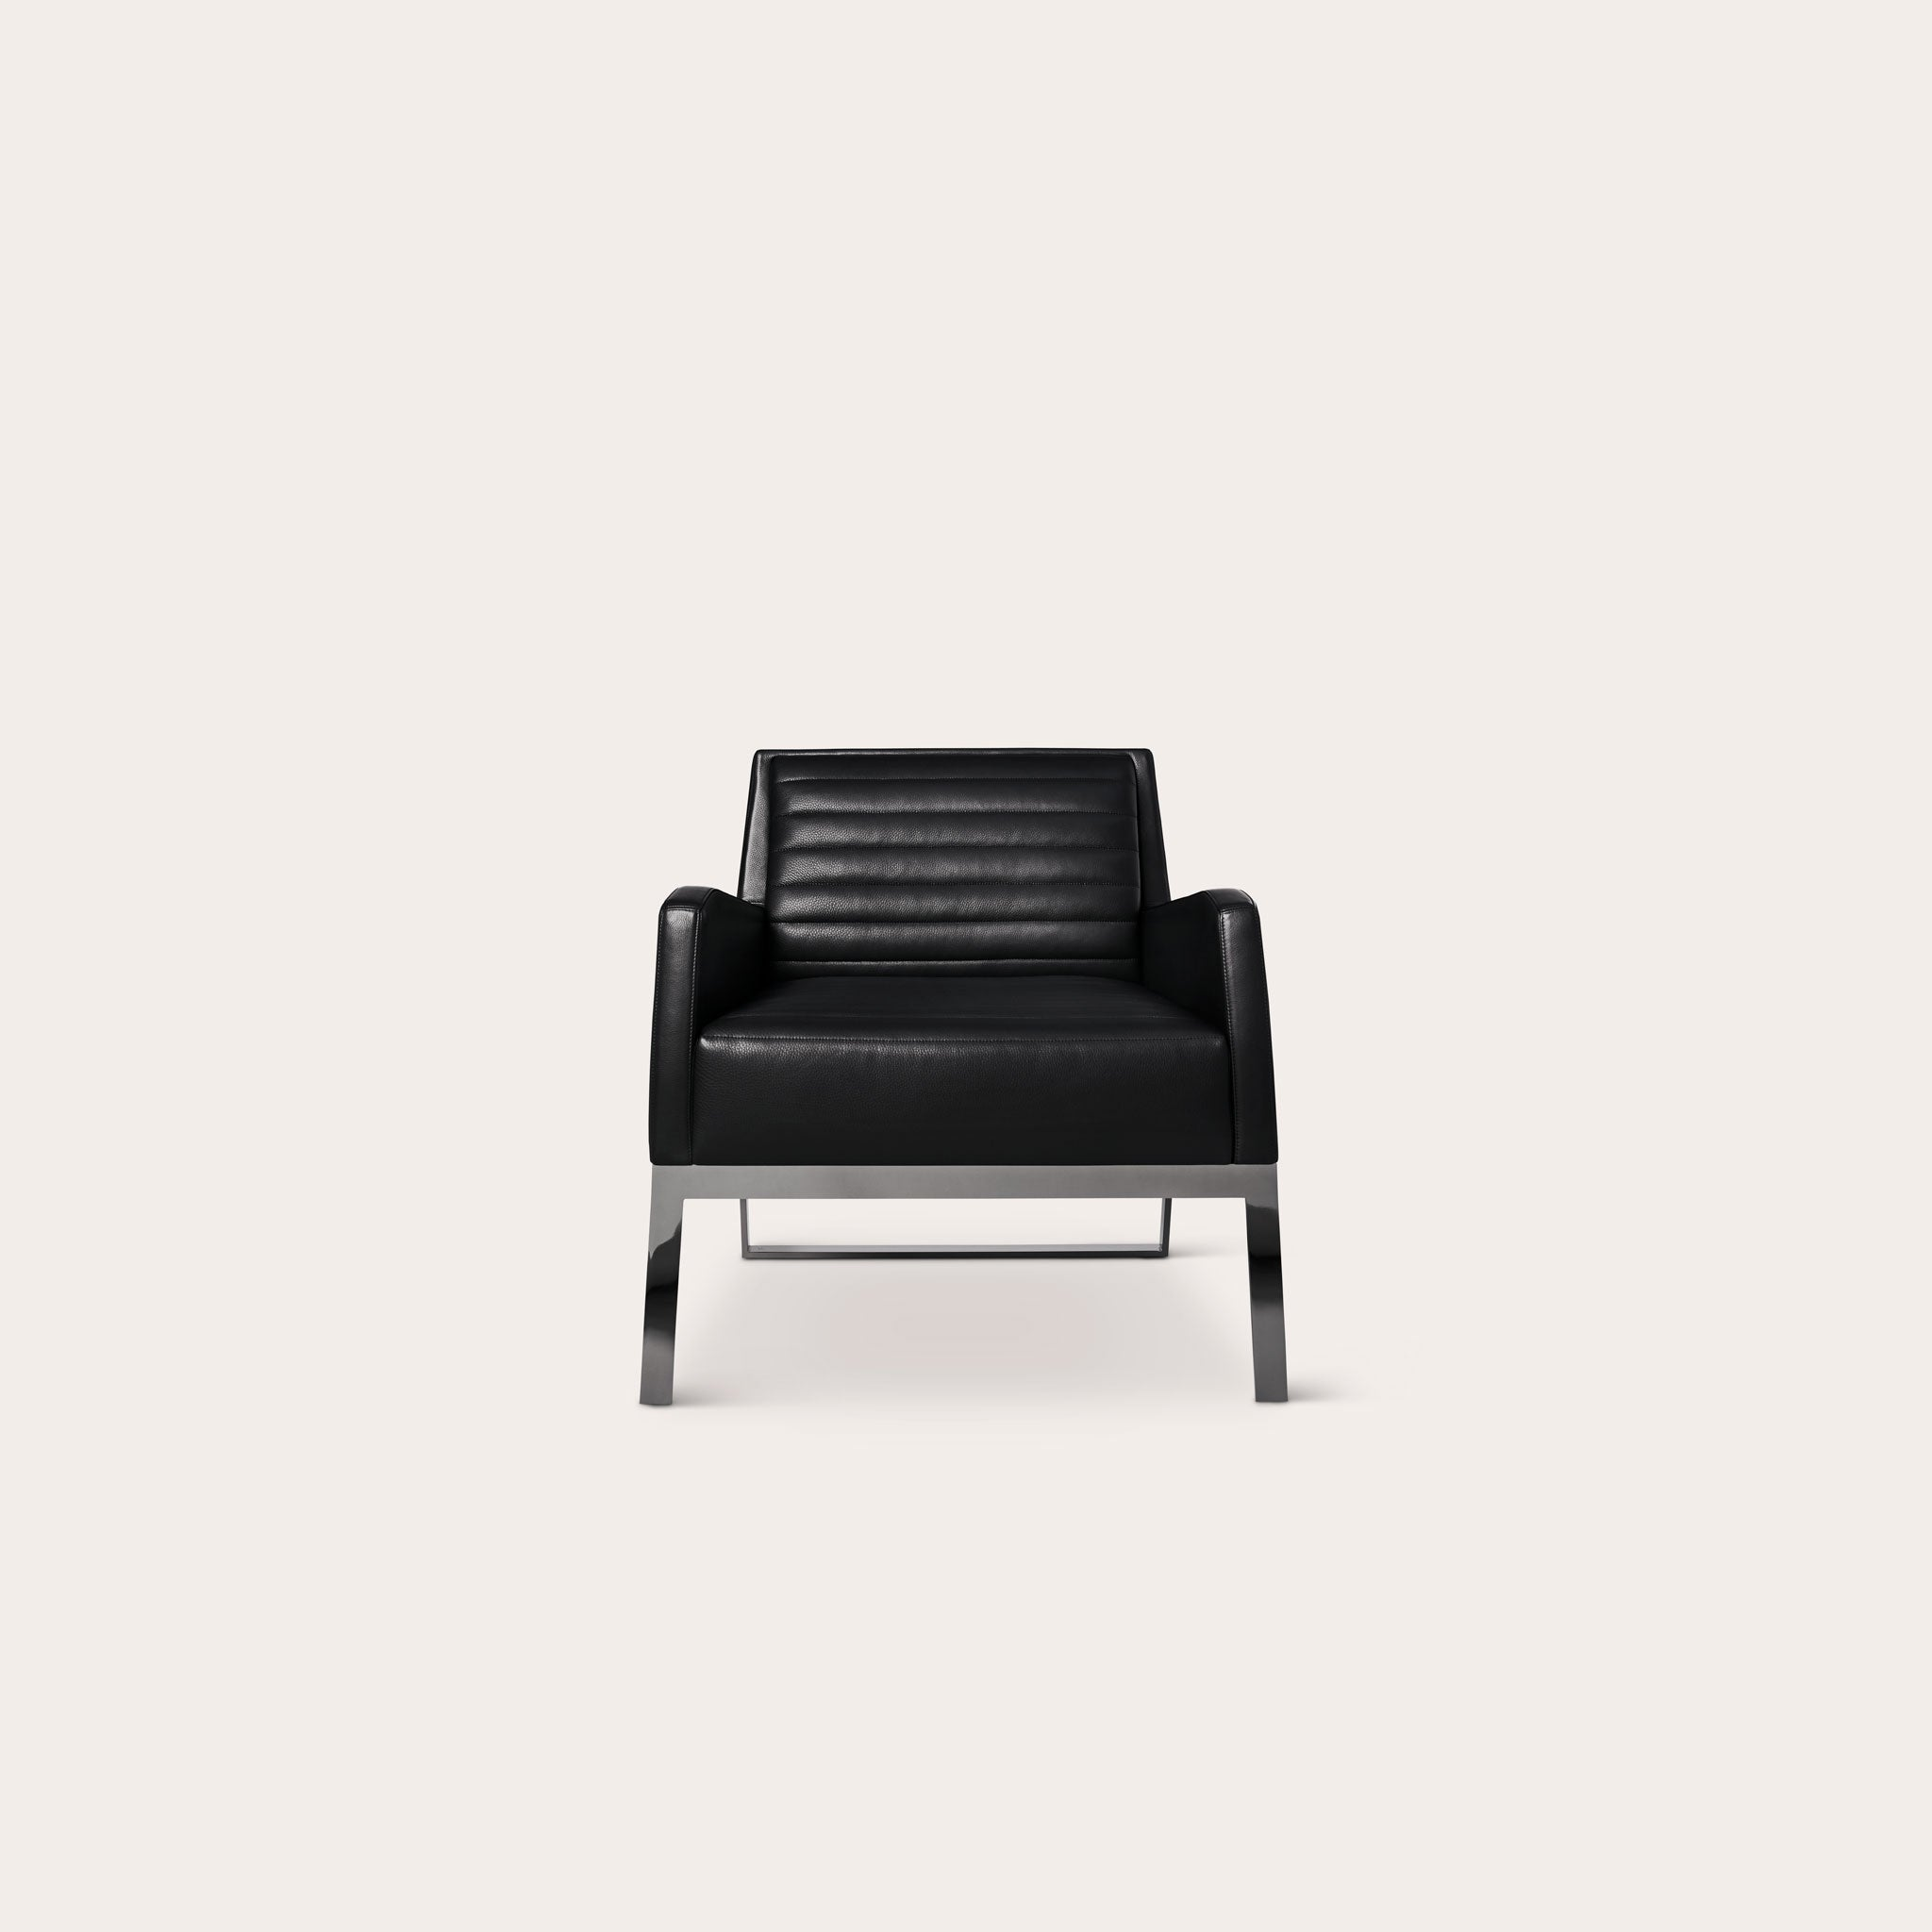 Fleet Street Lounge Chairs Yabu Pushelberg Designer Furniture Sku: 820-240-10009